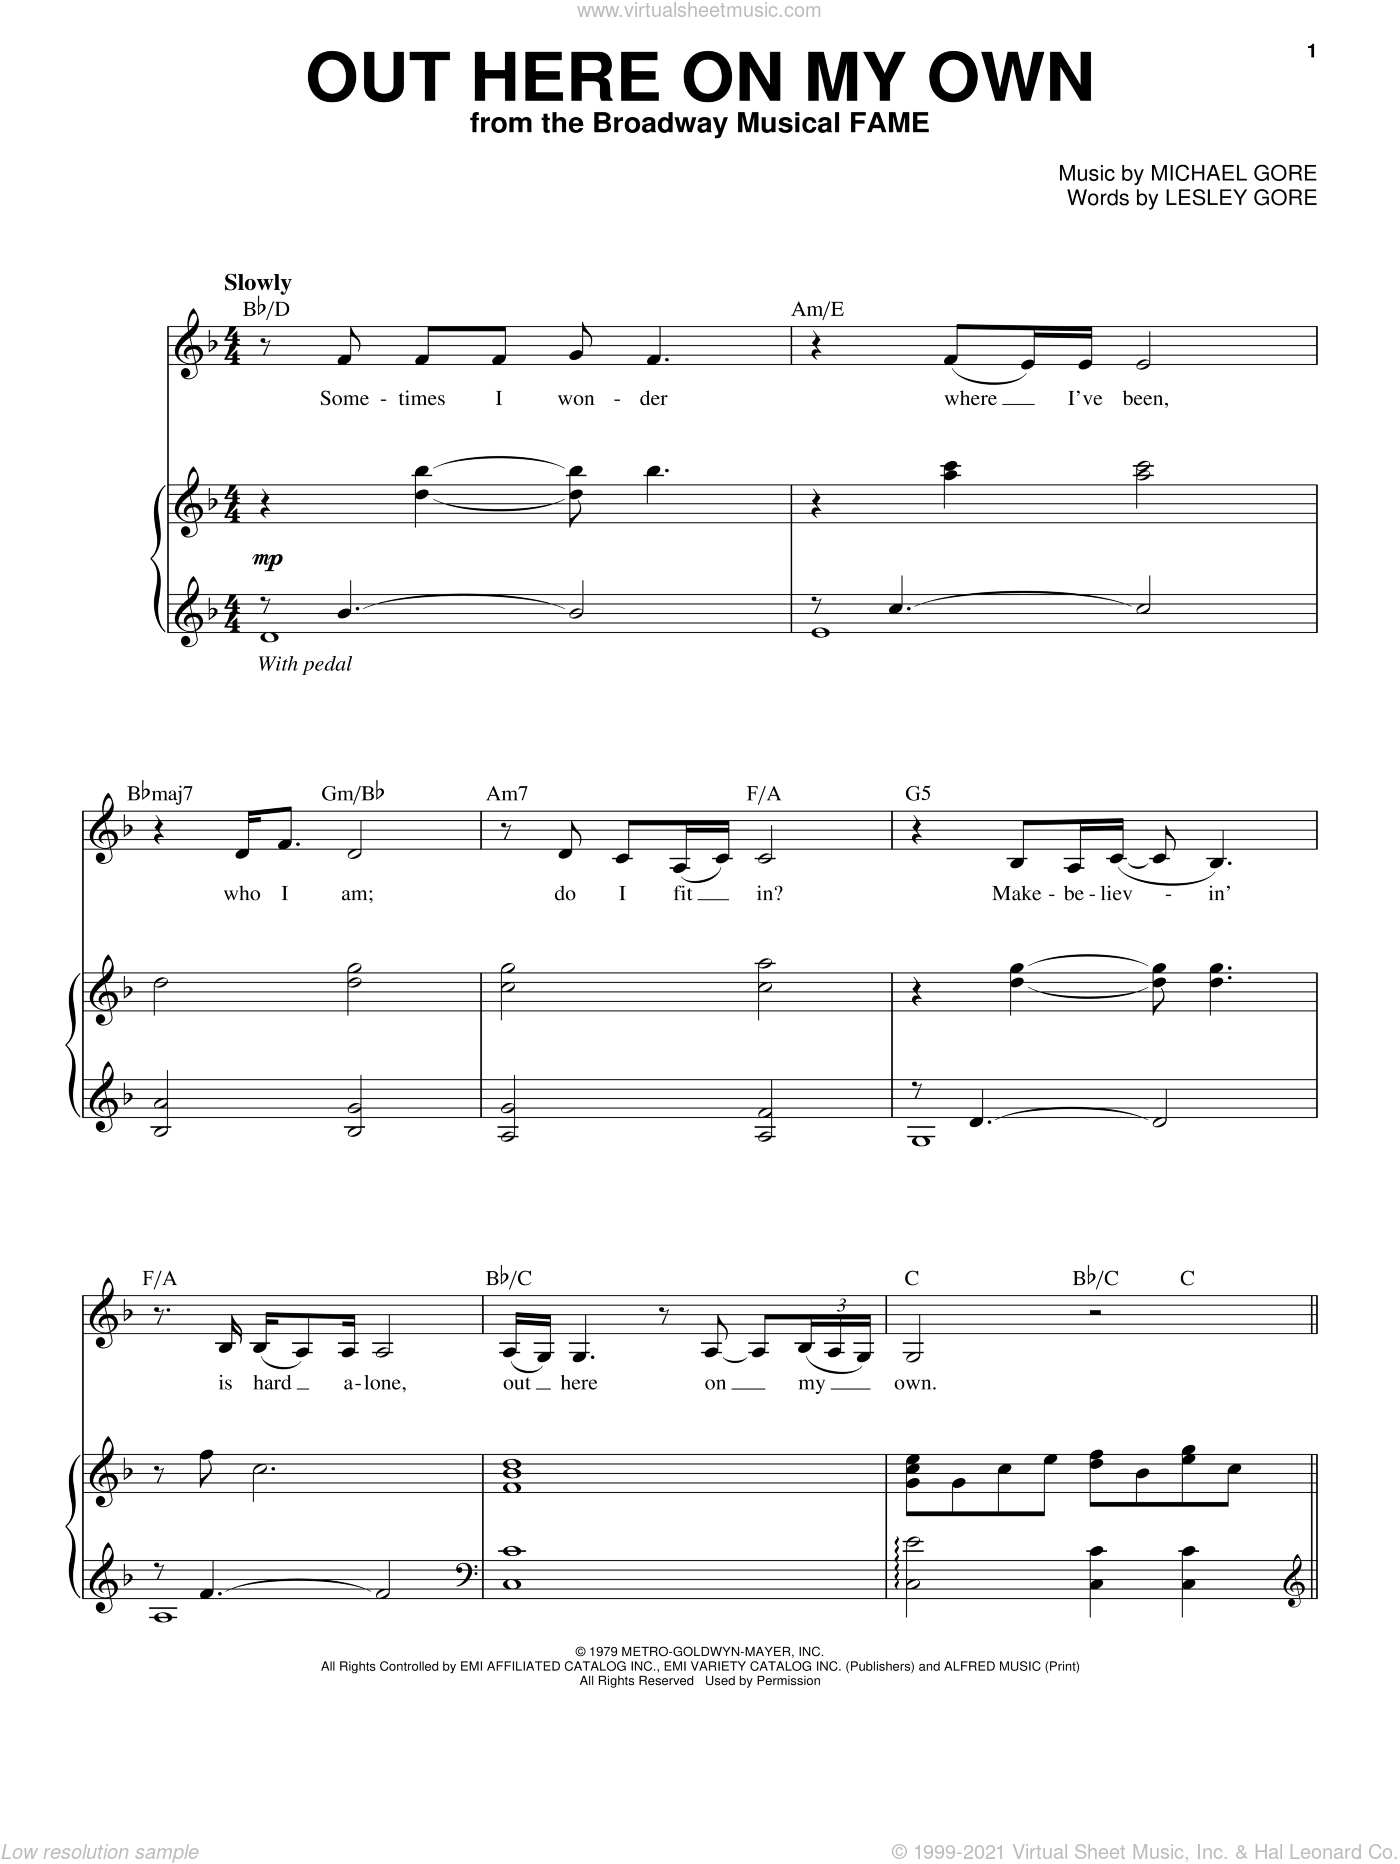 Out Here On My Own sheet music for voice and piano by Michael Gore and Lesley Gore, intermediate skill level